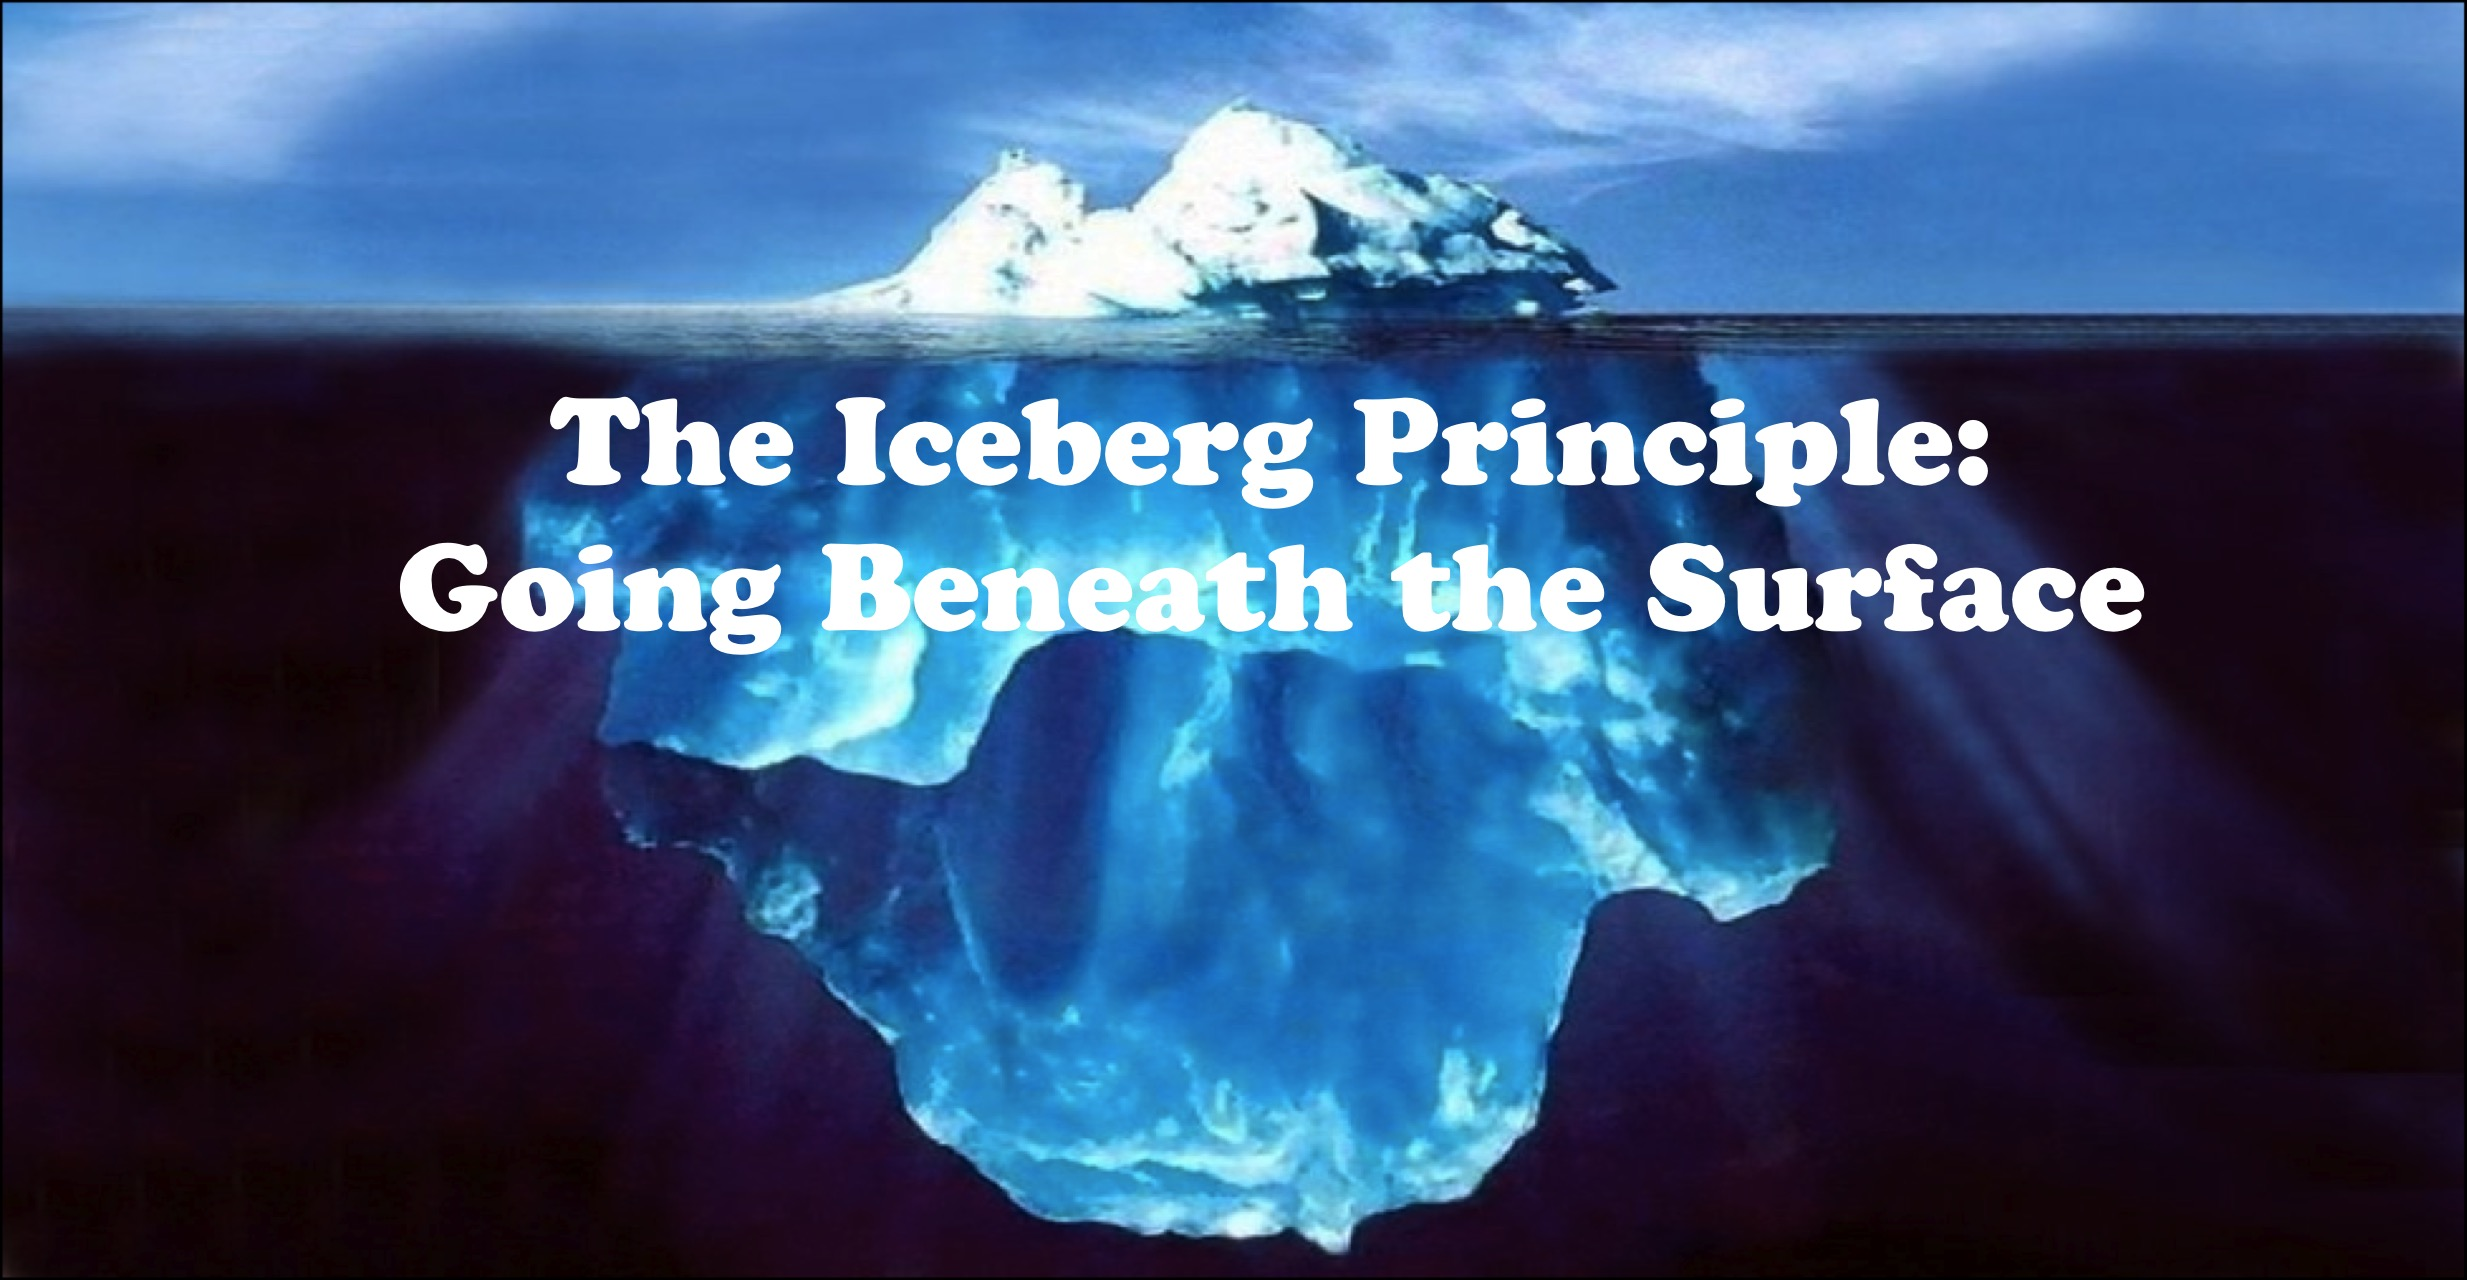 the iceberg principle going beneath the surface